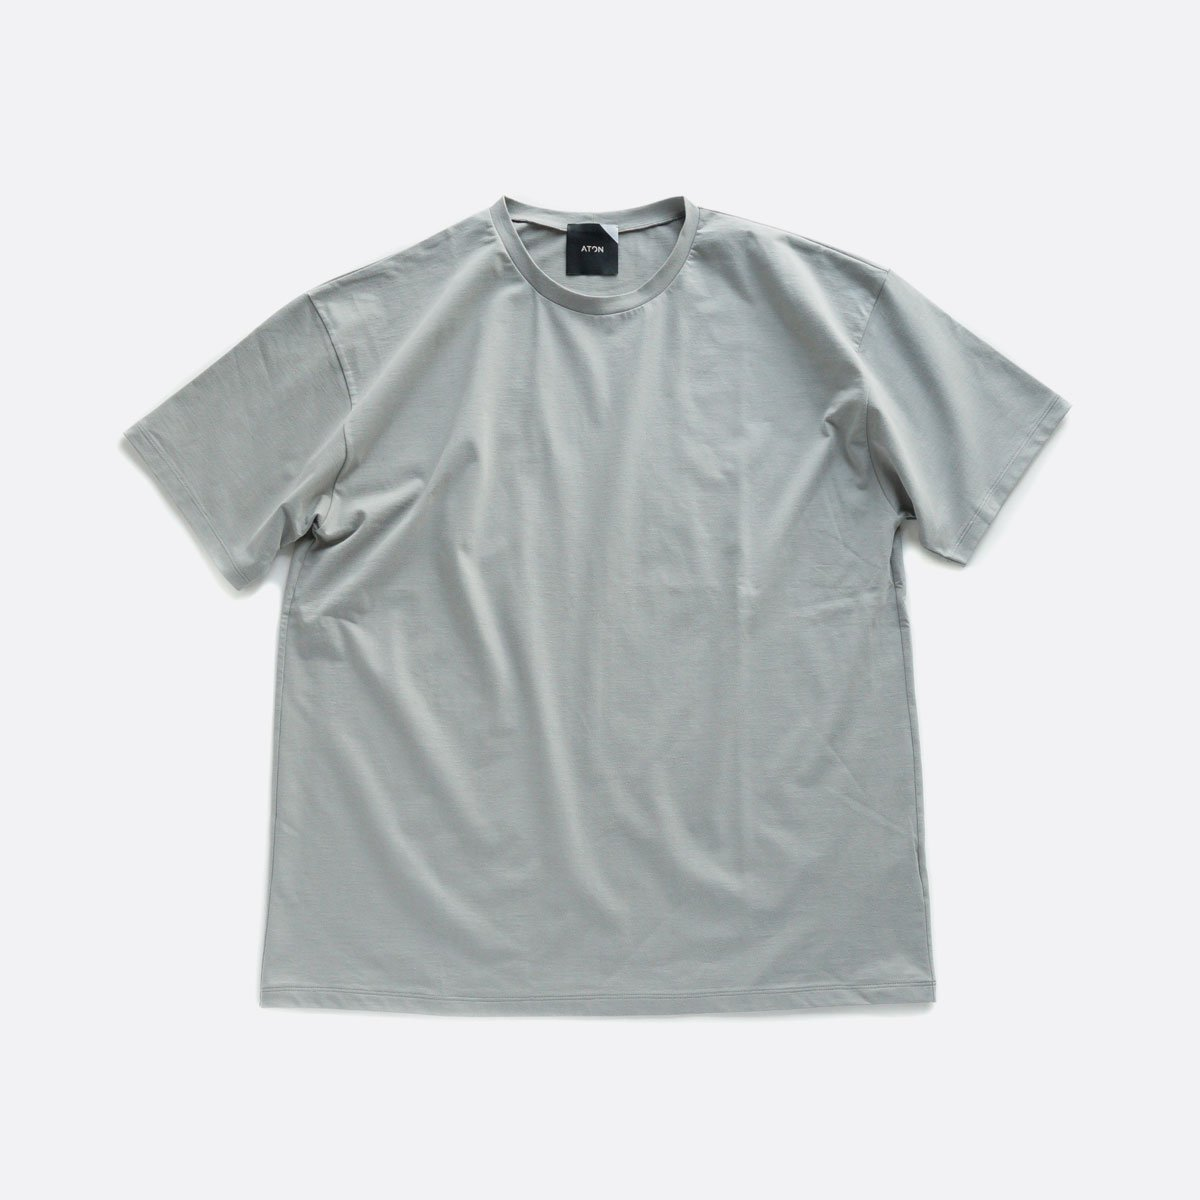 ATON NUBACK COTTON OVERSIZED T-SHIRT (LIGHT GRAY)